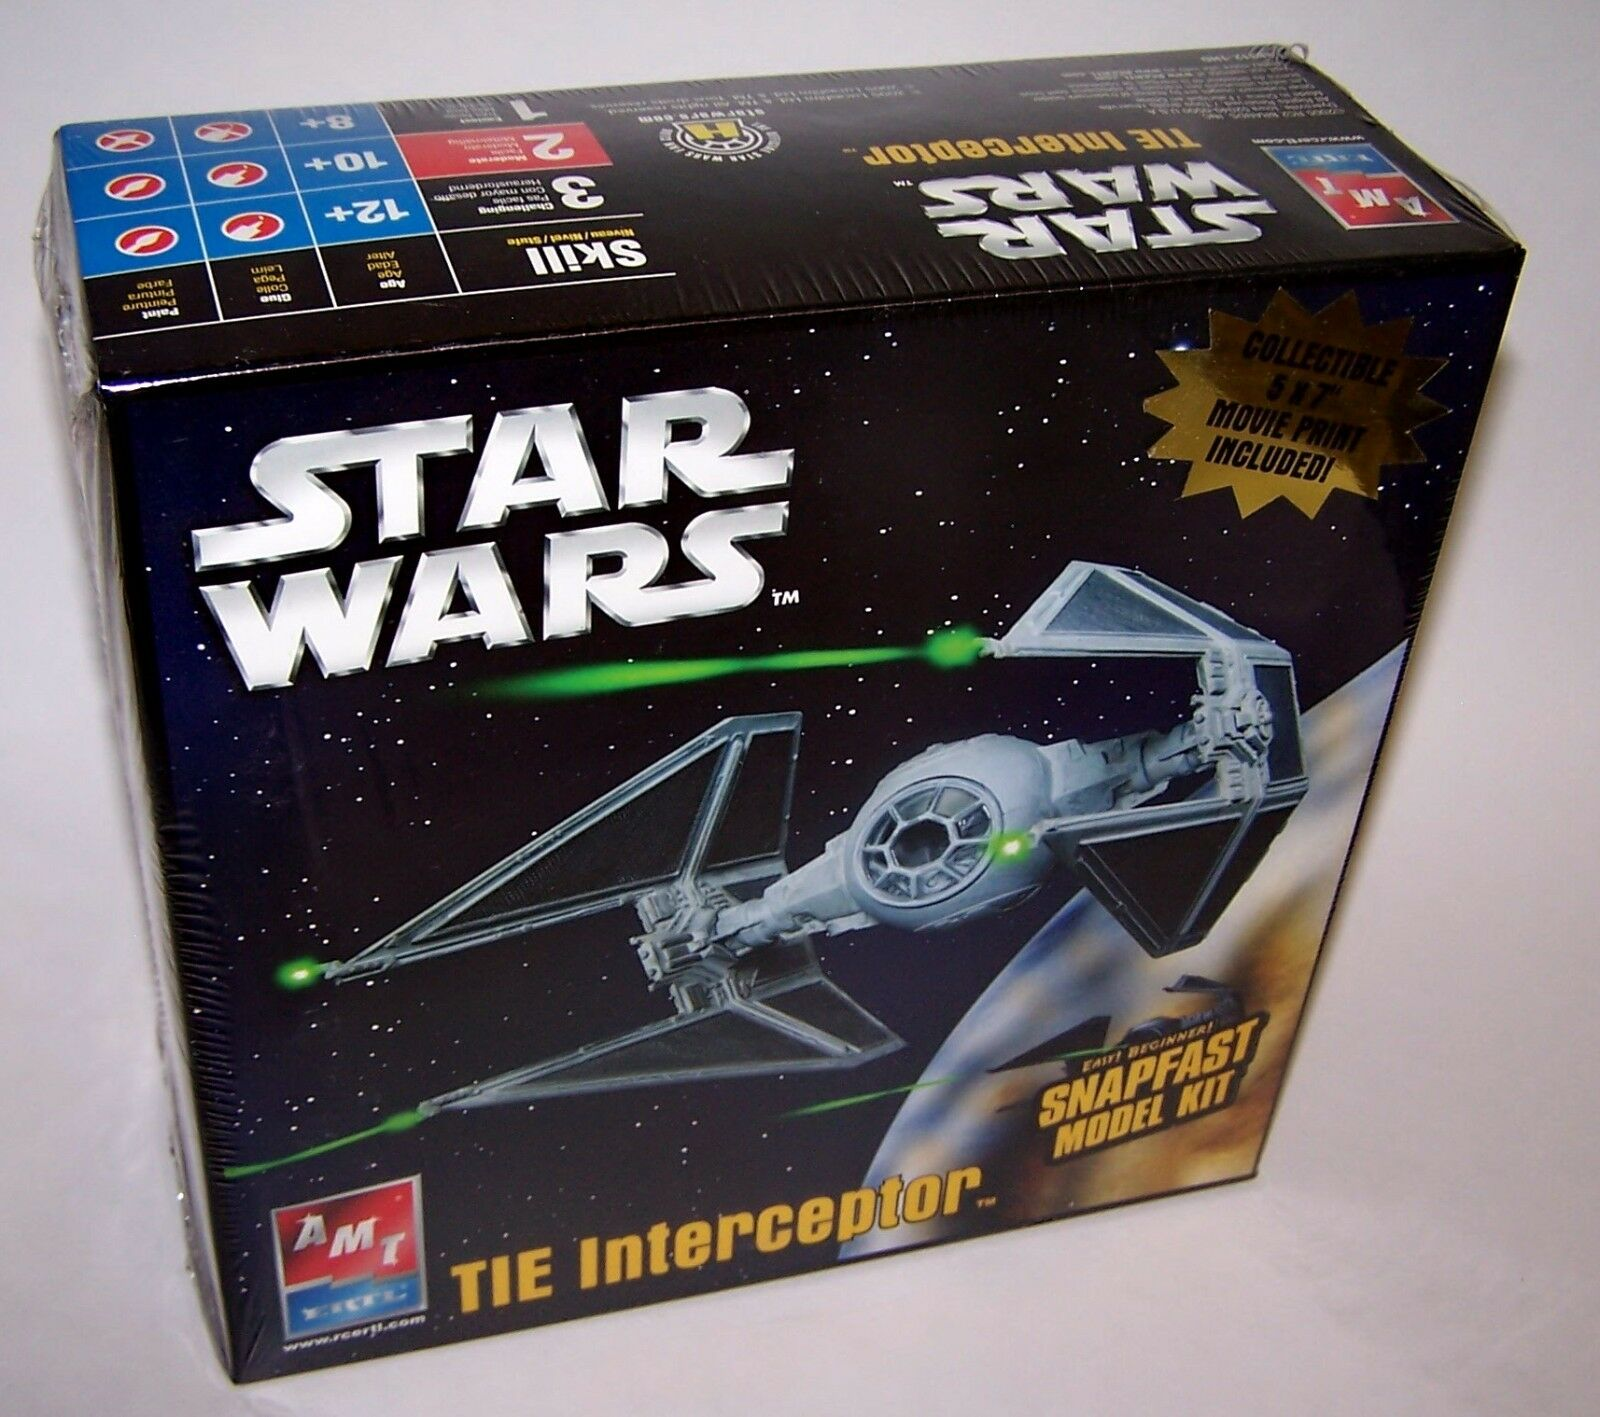 Star Wars Tie Interceptor Snapfast Model Kit 5x7 Movie Print Included NIB Sealed